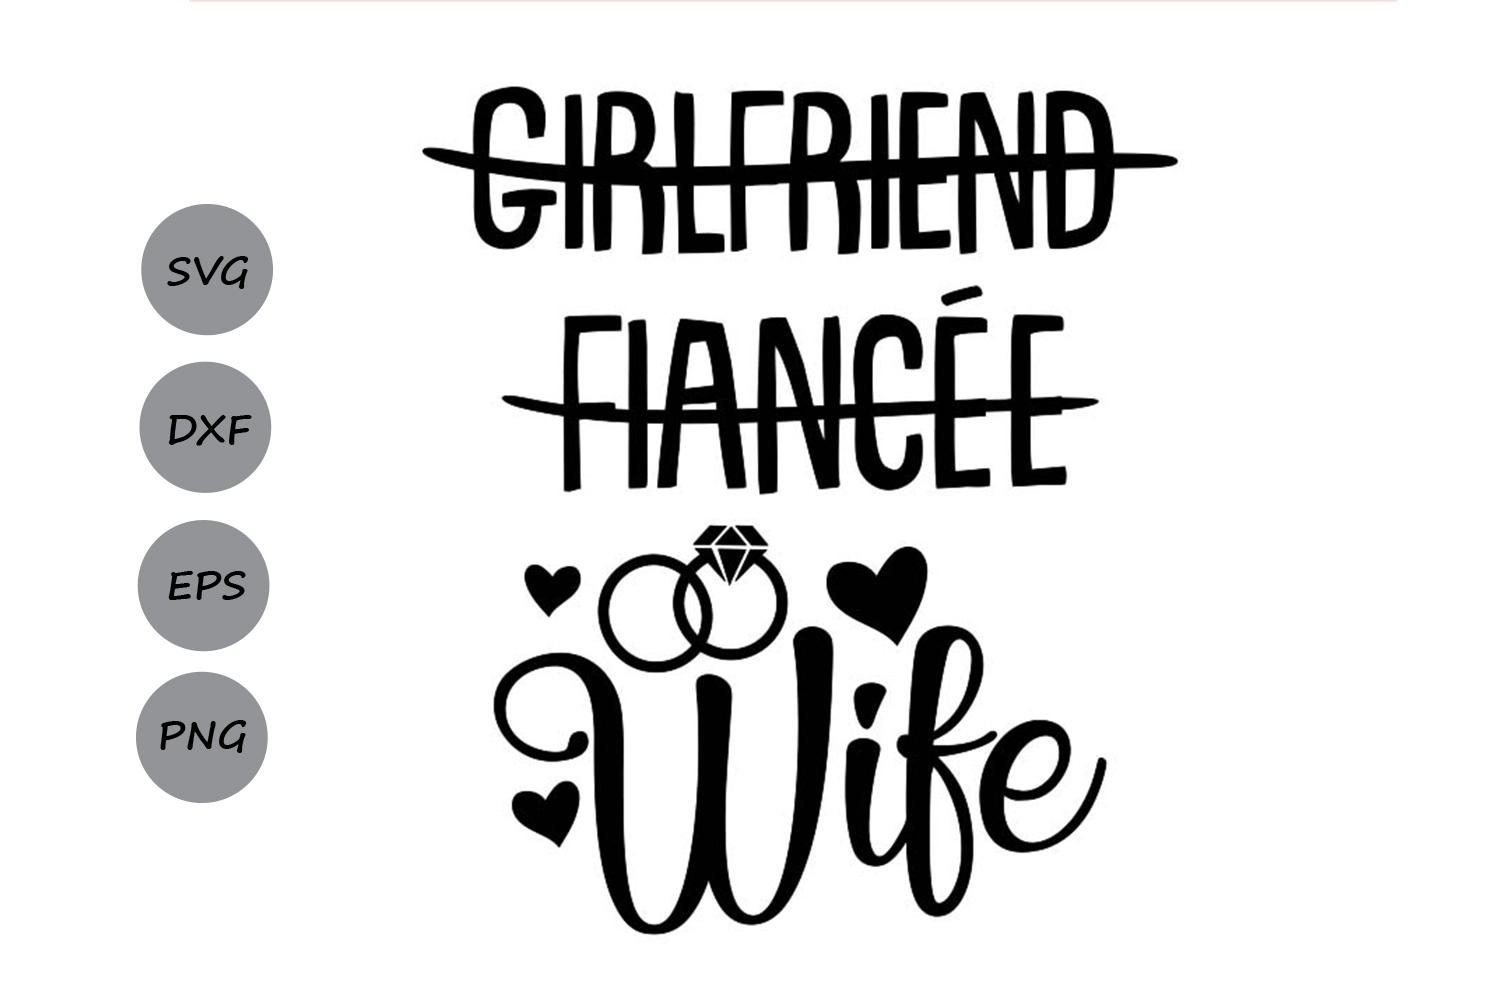 Download Free Girlfriend Fiancee Wife Graphic By Cosmosfineart Creative Fabrica for Cricut Explore, Silhouette and other cutting machines.